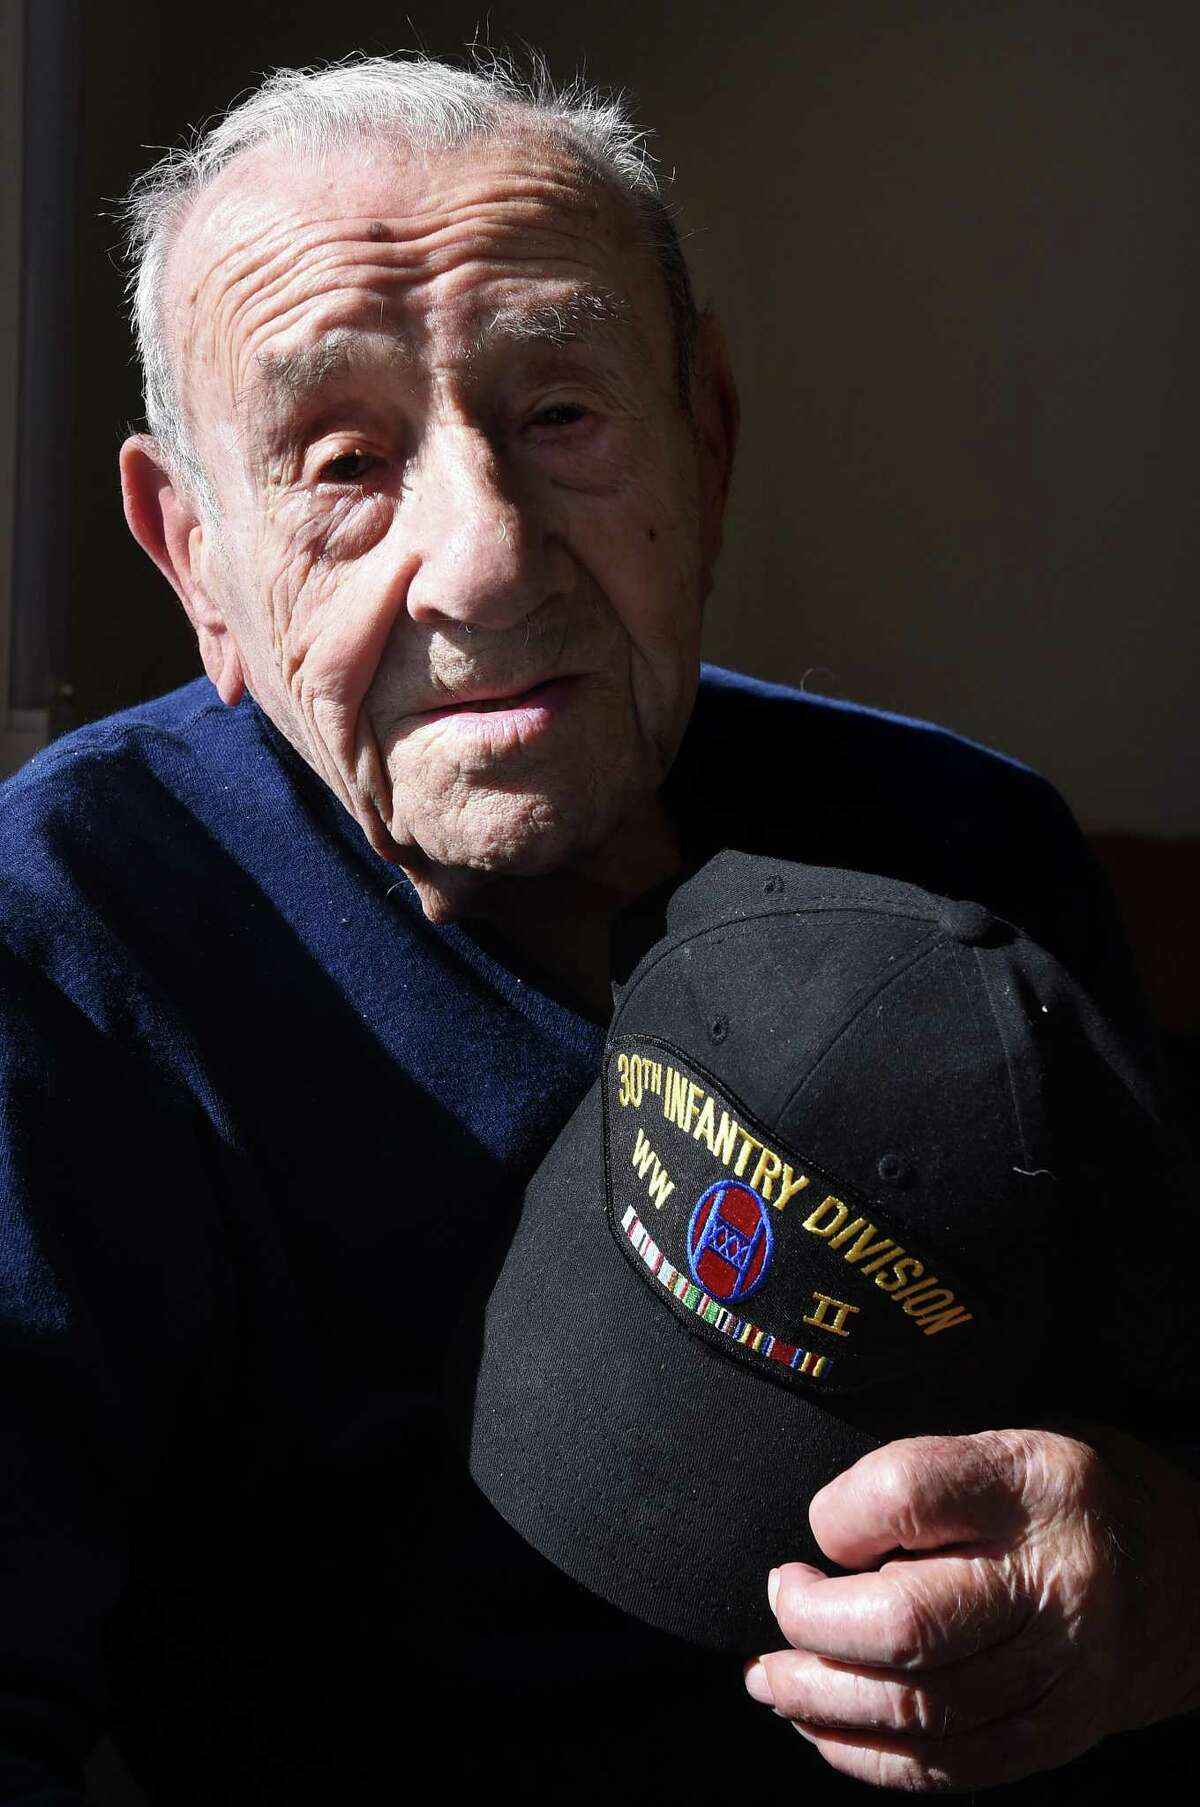 World War II Army veteran Albert Rapini, who took part in the invasion of Omaha Beach, is photographed at his home in Orange on November 8, 2019.